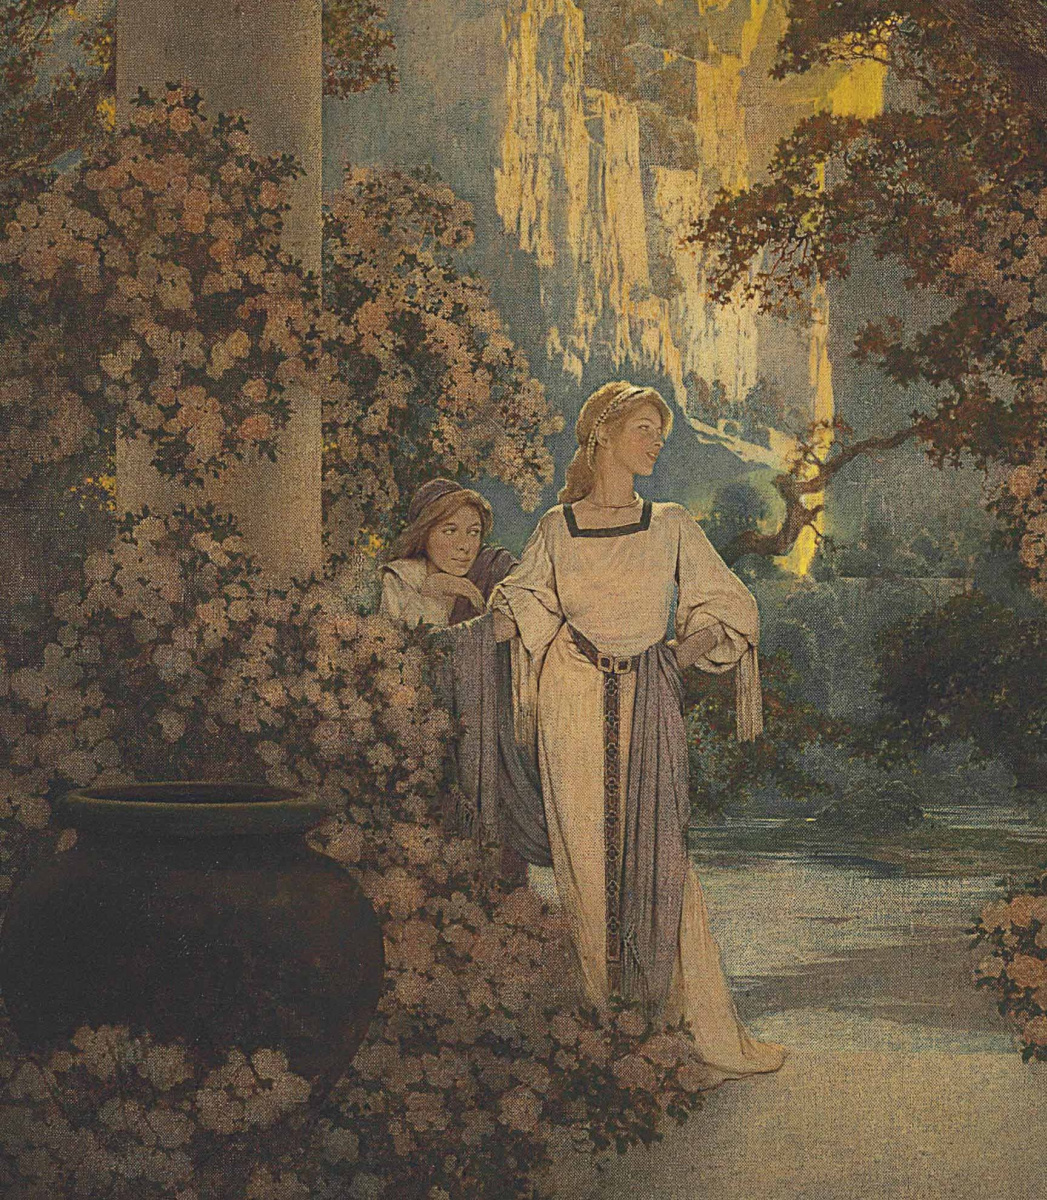 Maxfield Parrish. The land of Make-Beliv. Fragment